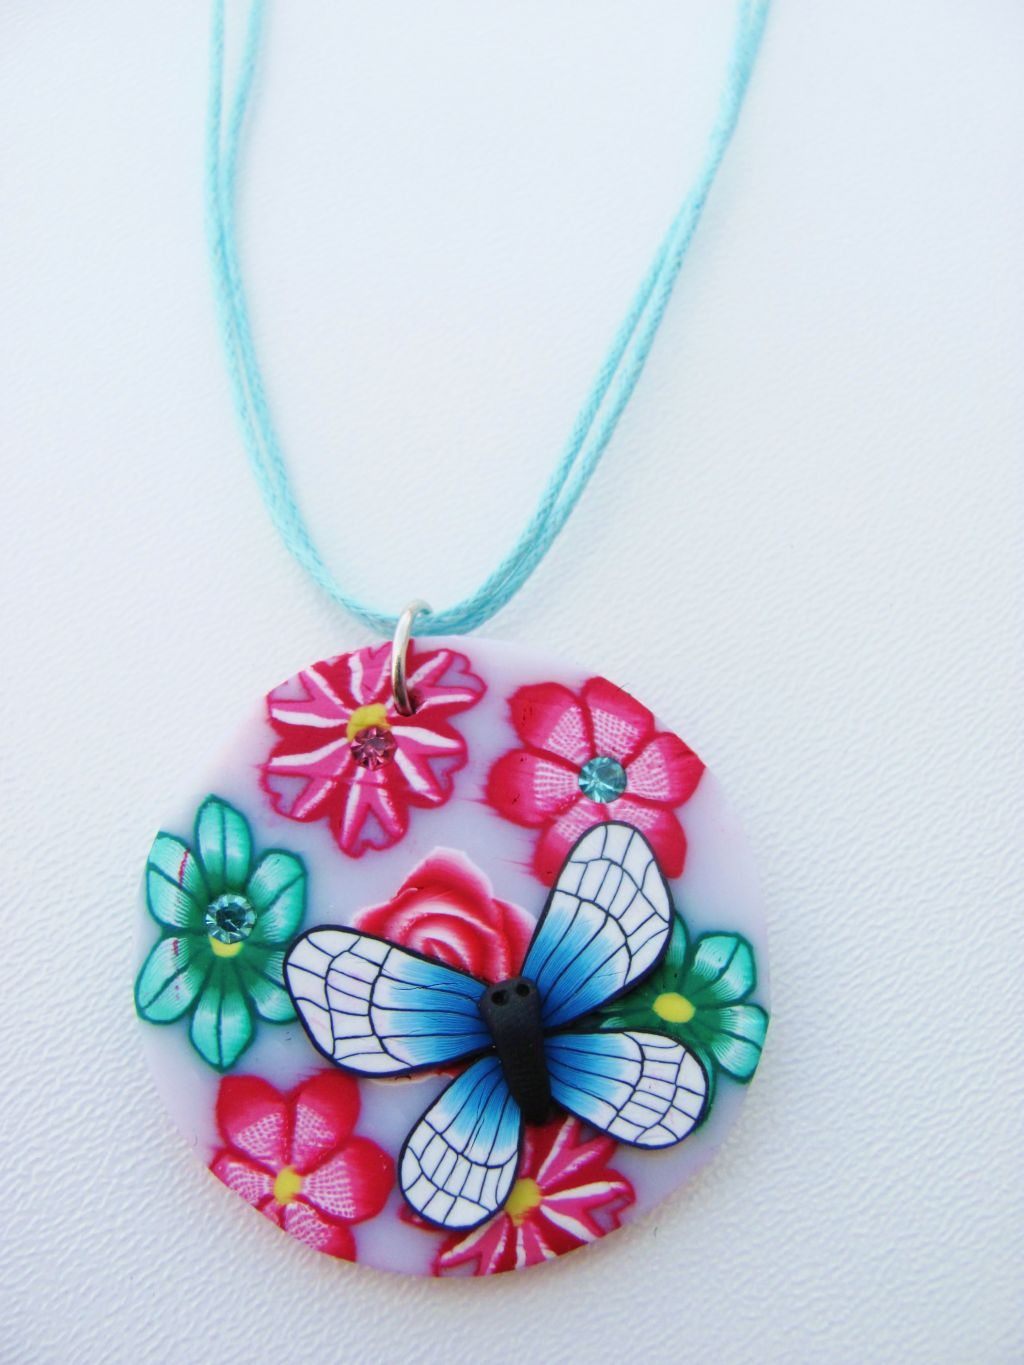 Butterfly & Flowers Girls Summer Colors Beach Pendant Necklace, Blue Cotton Strings